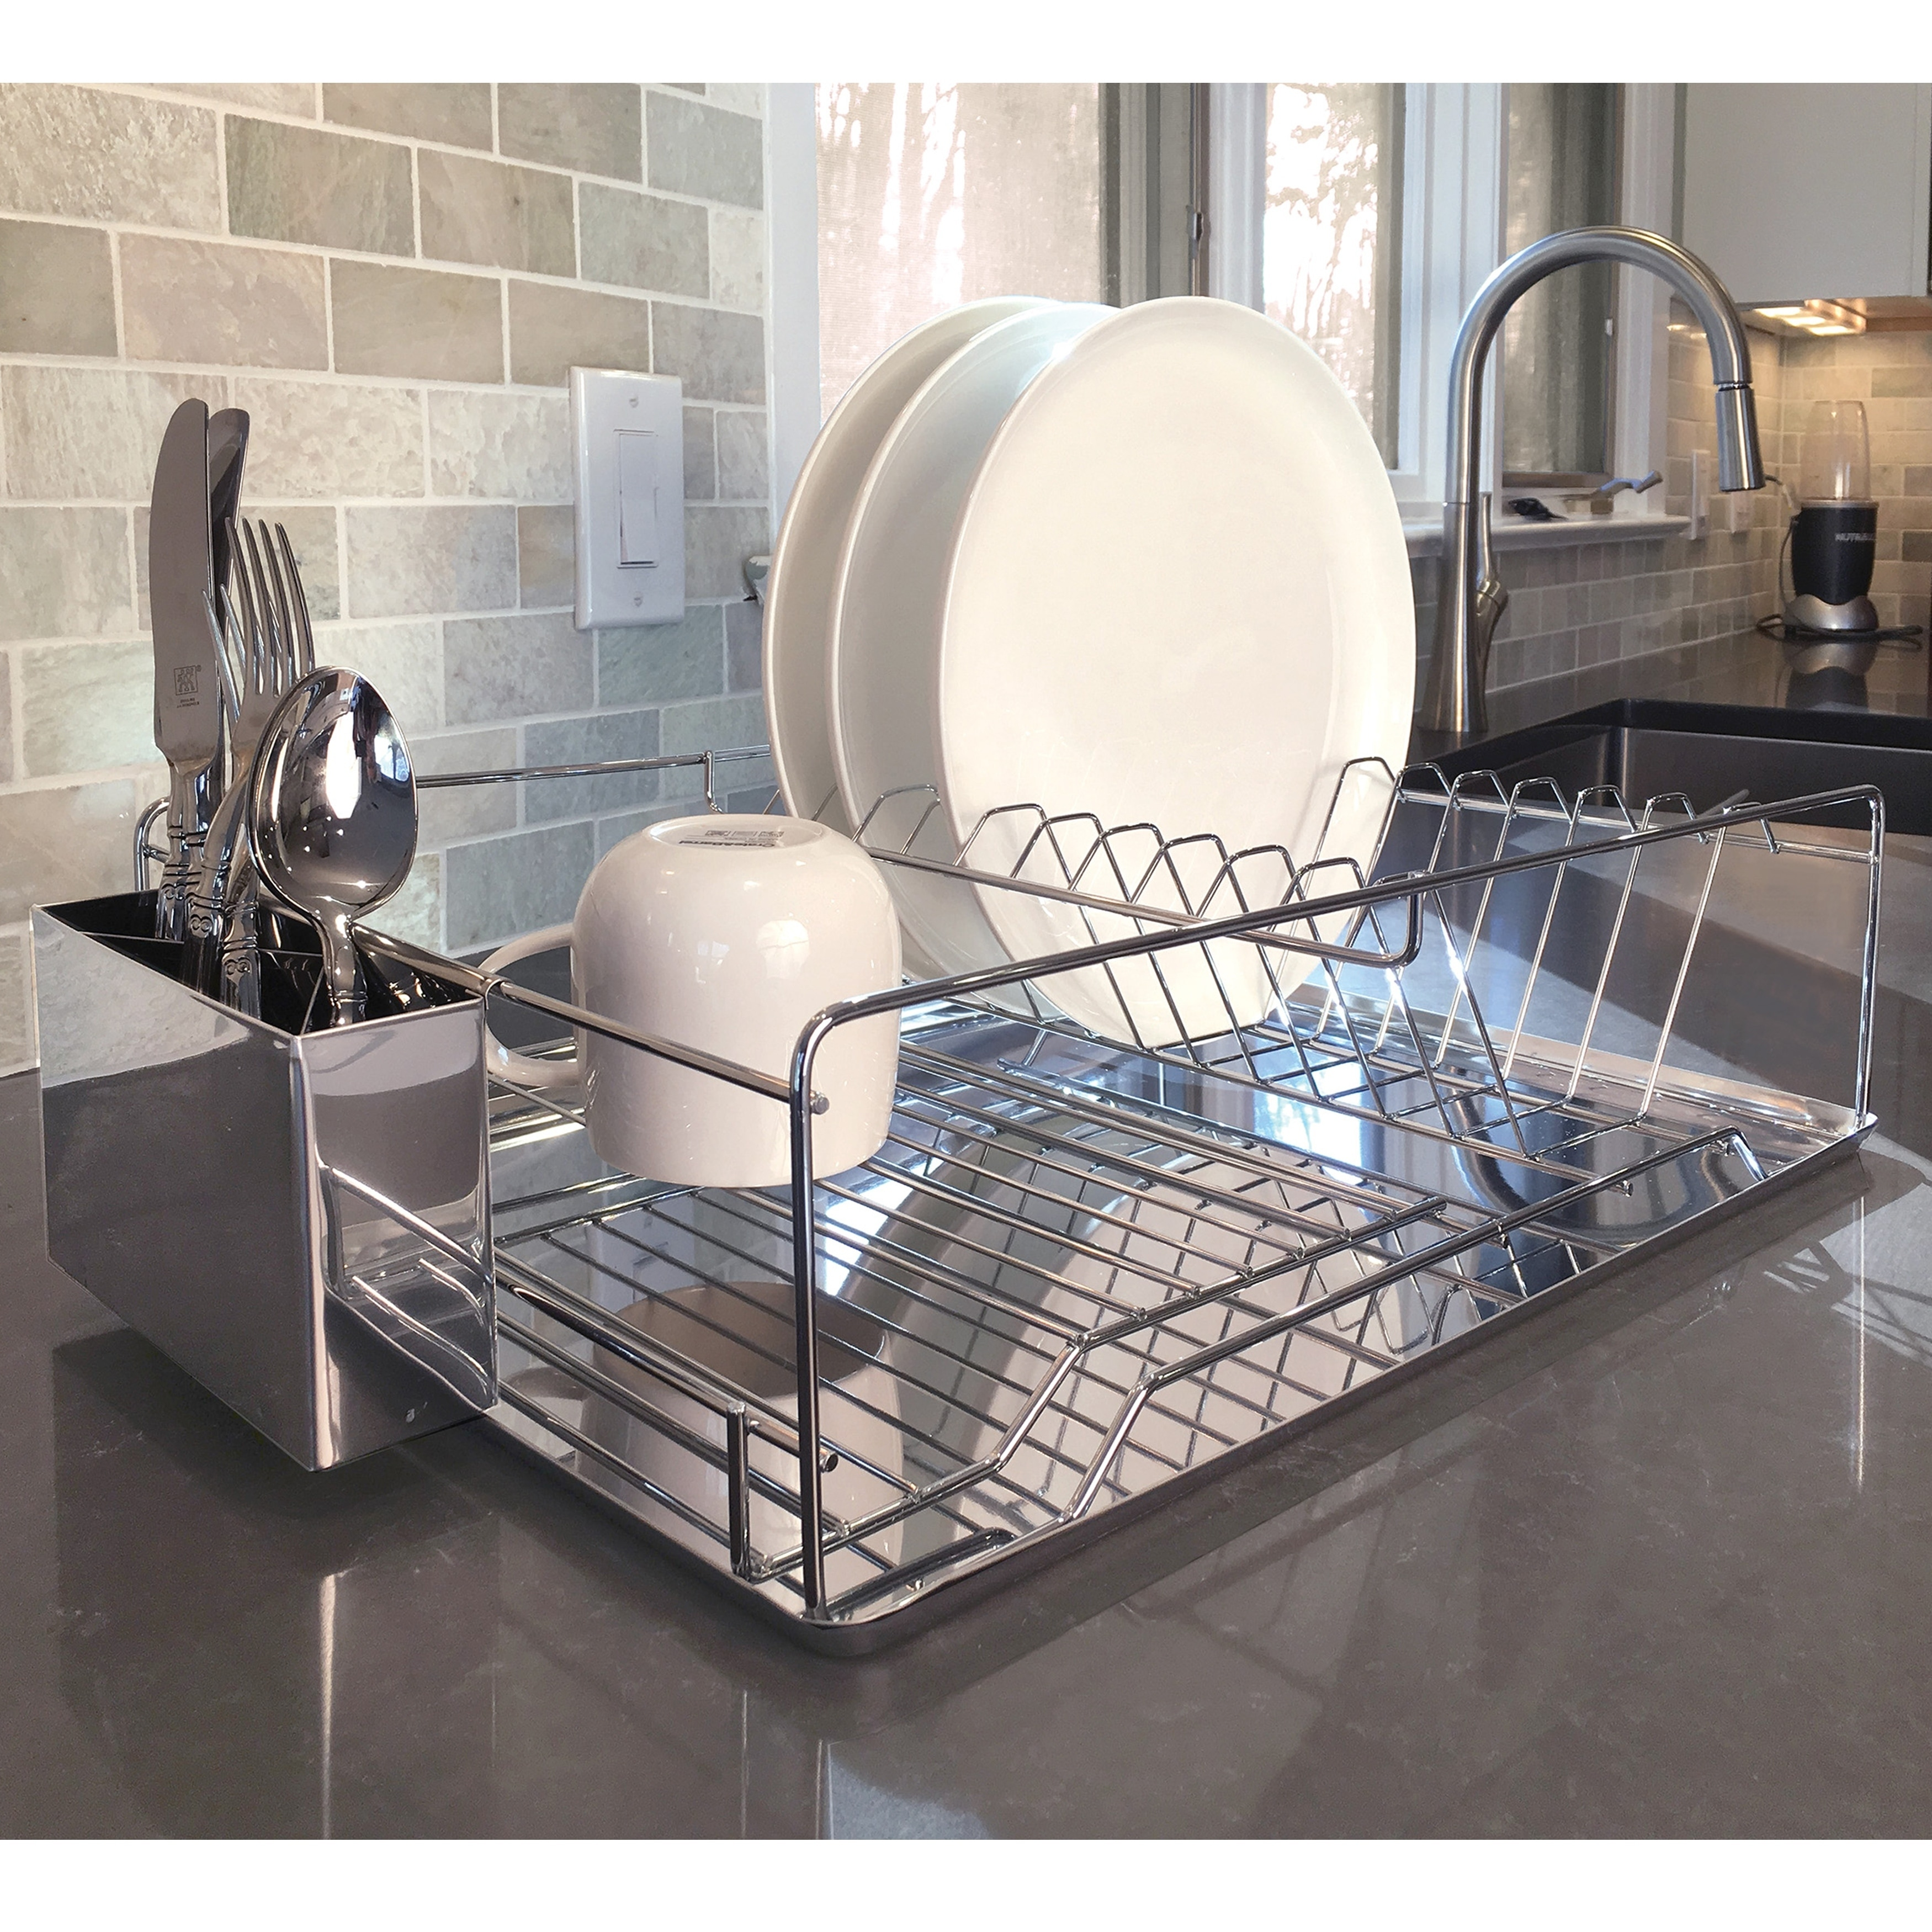 Shop Modern Kitchen Chrome Plated 2 Tier Dish Drying Rack And